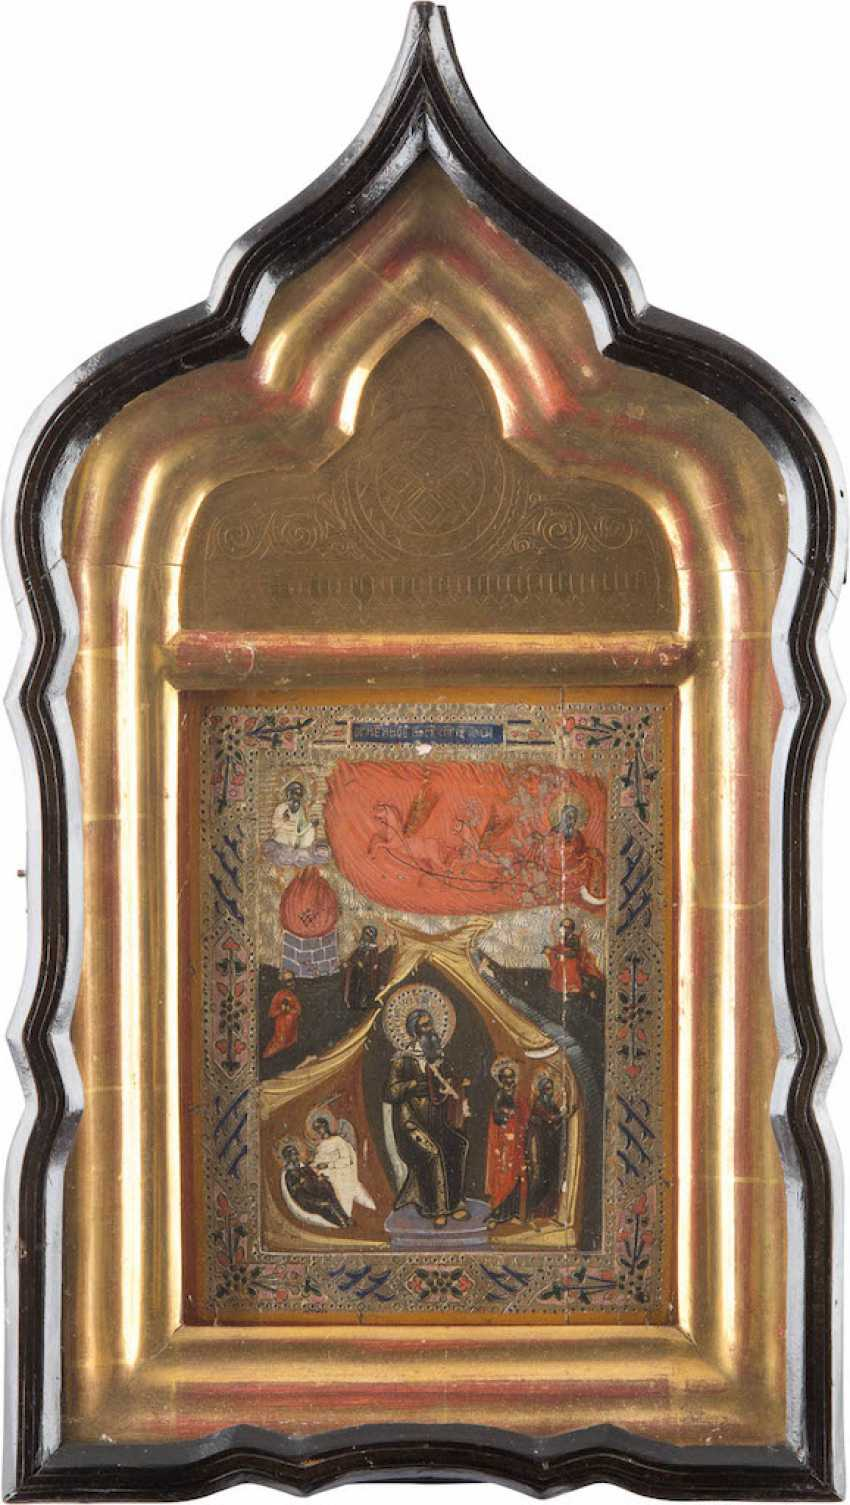 ICON WITH THE PROPHET ELIJAH IN THE ICON CASE - photo 1